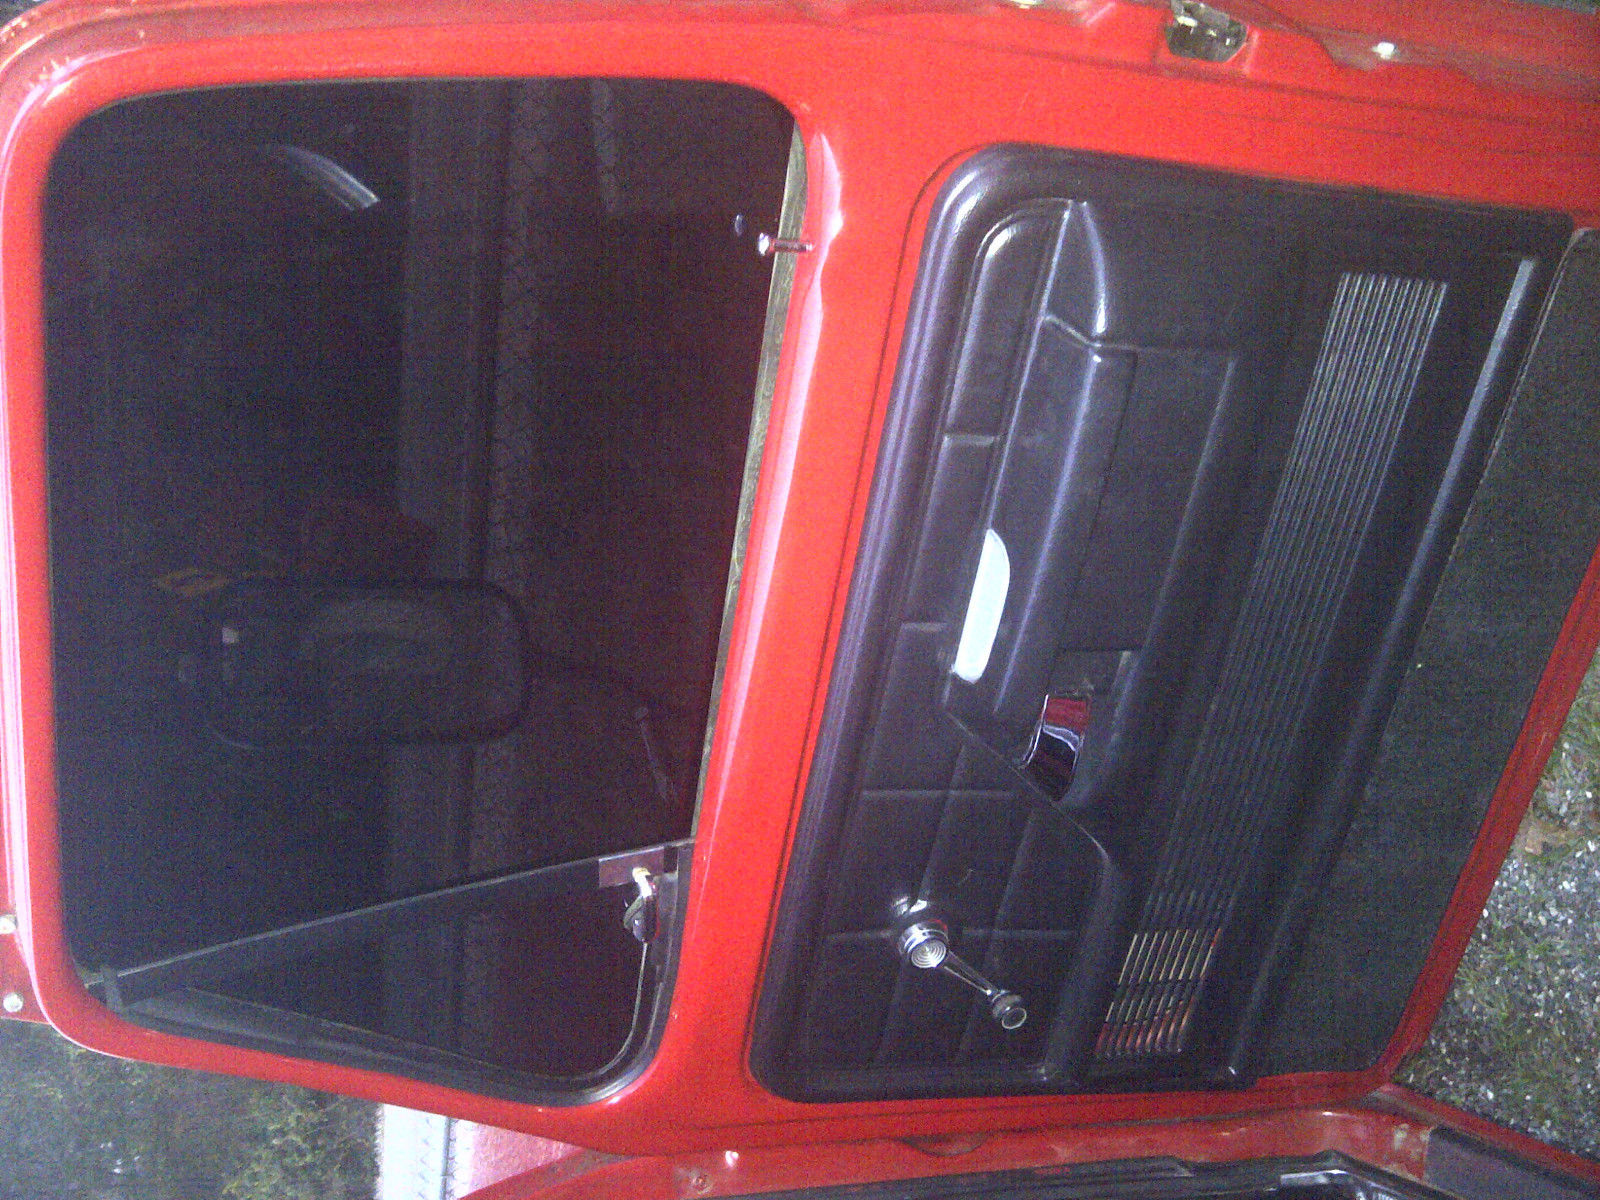 1977 Ford F350 Carhauler Ramp Truck Hodges Wedge Flatbed Flat Bed 1969 F 250 F250 F100 77 Classic 350 For Sale